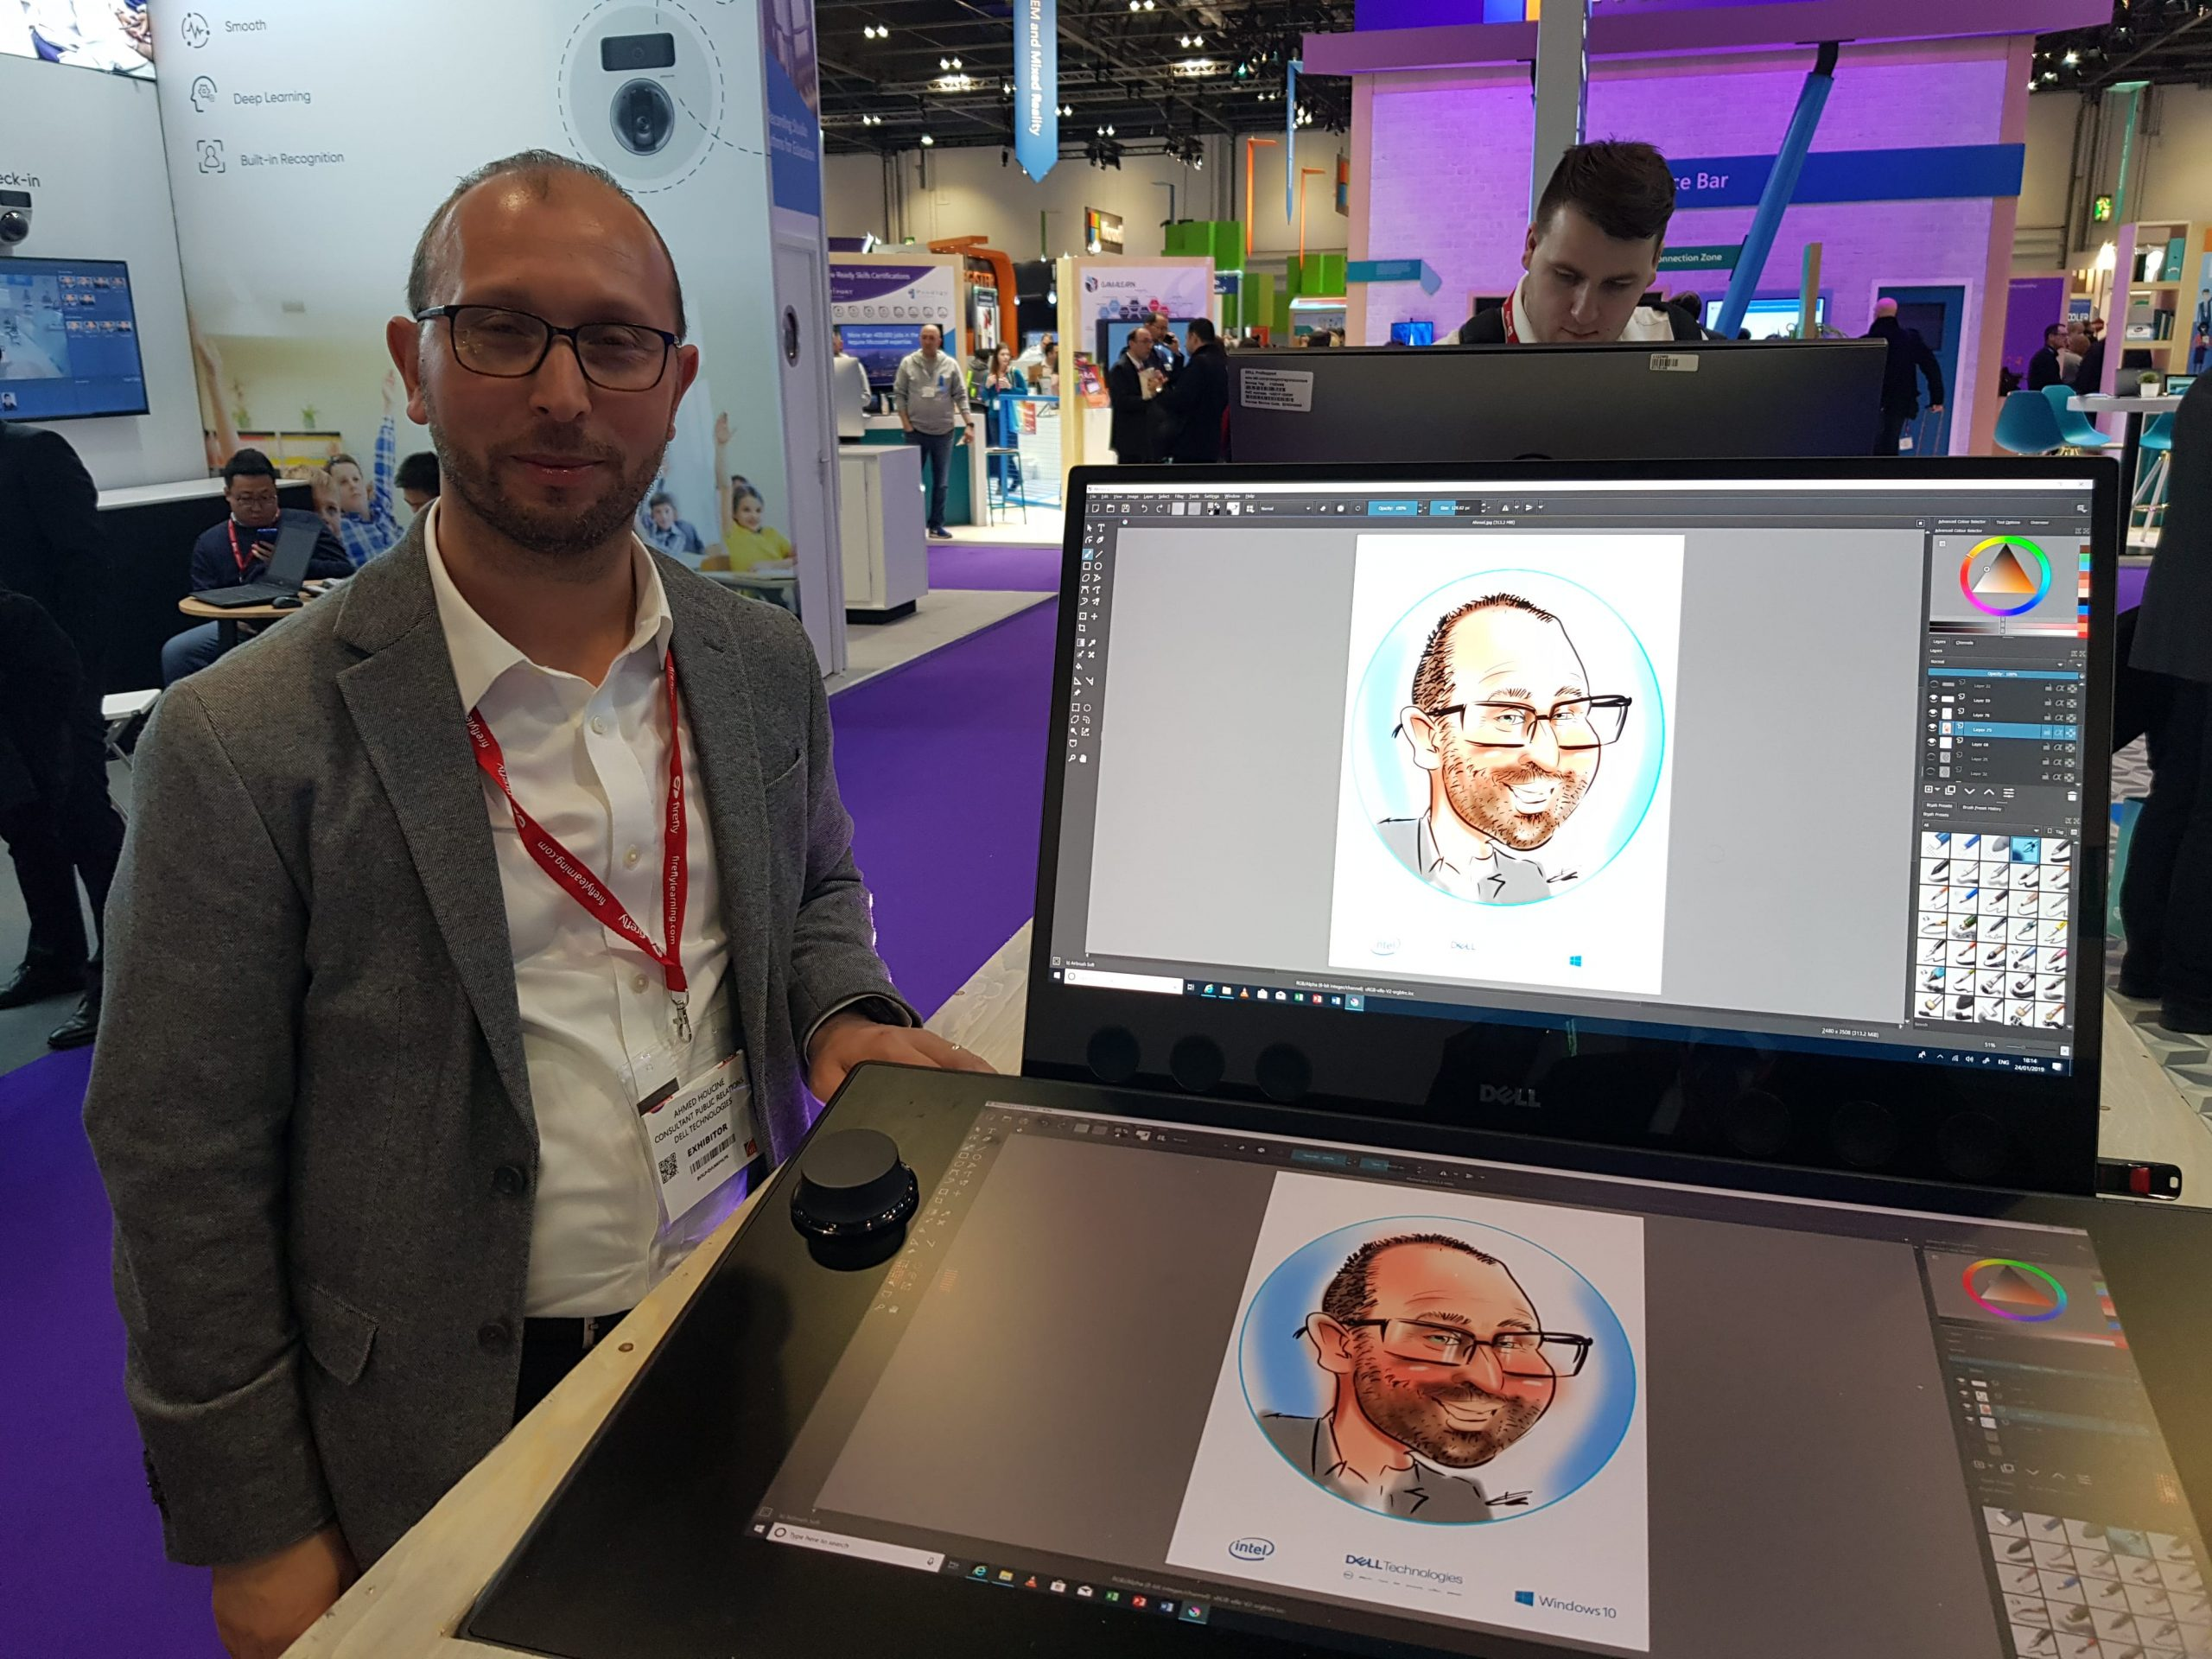 Colour funny caricatures